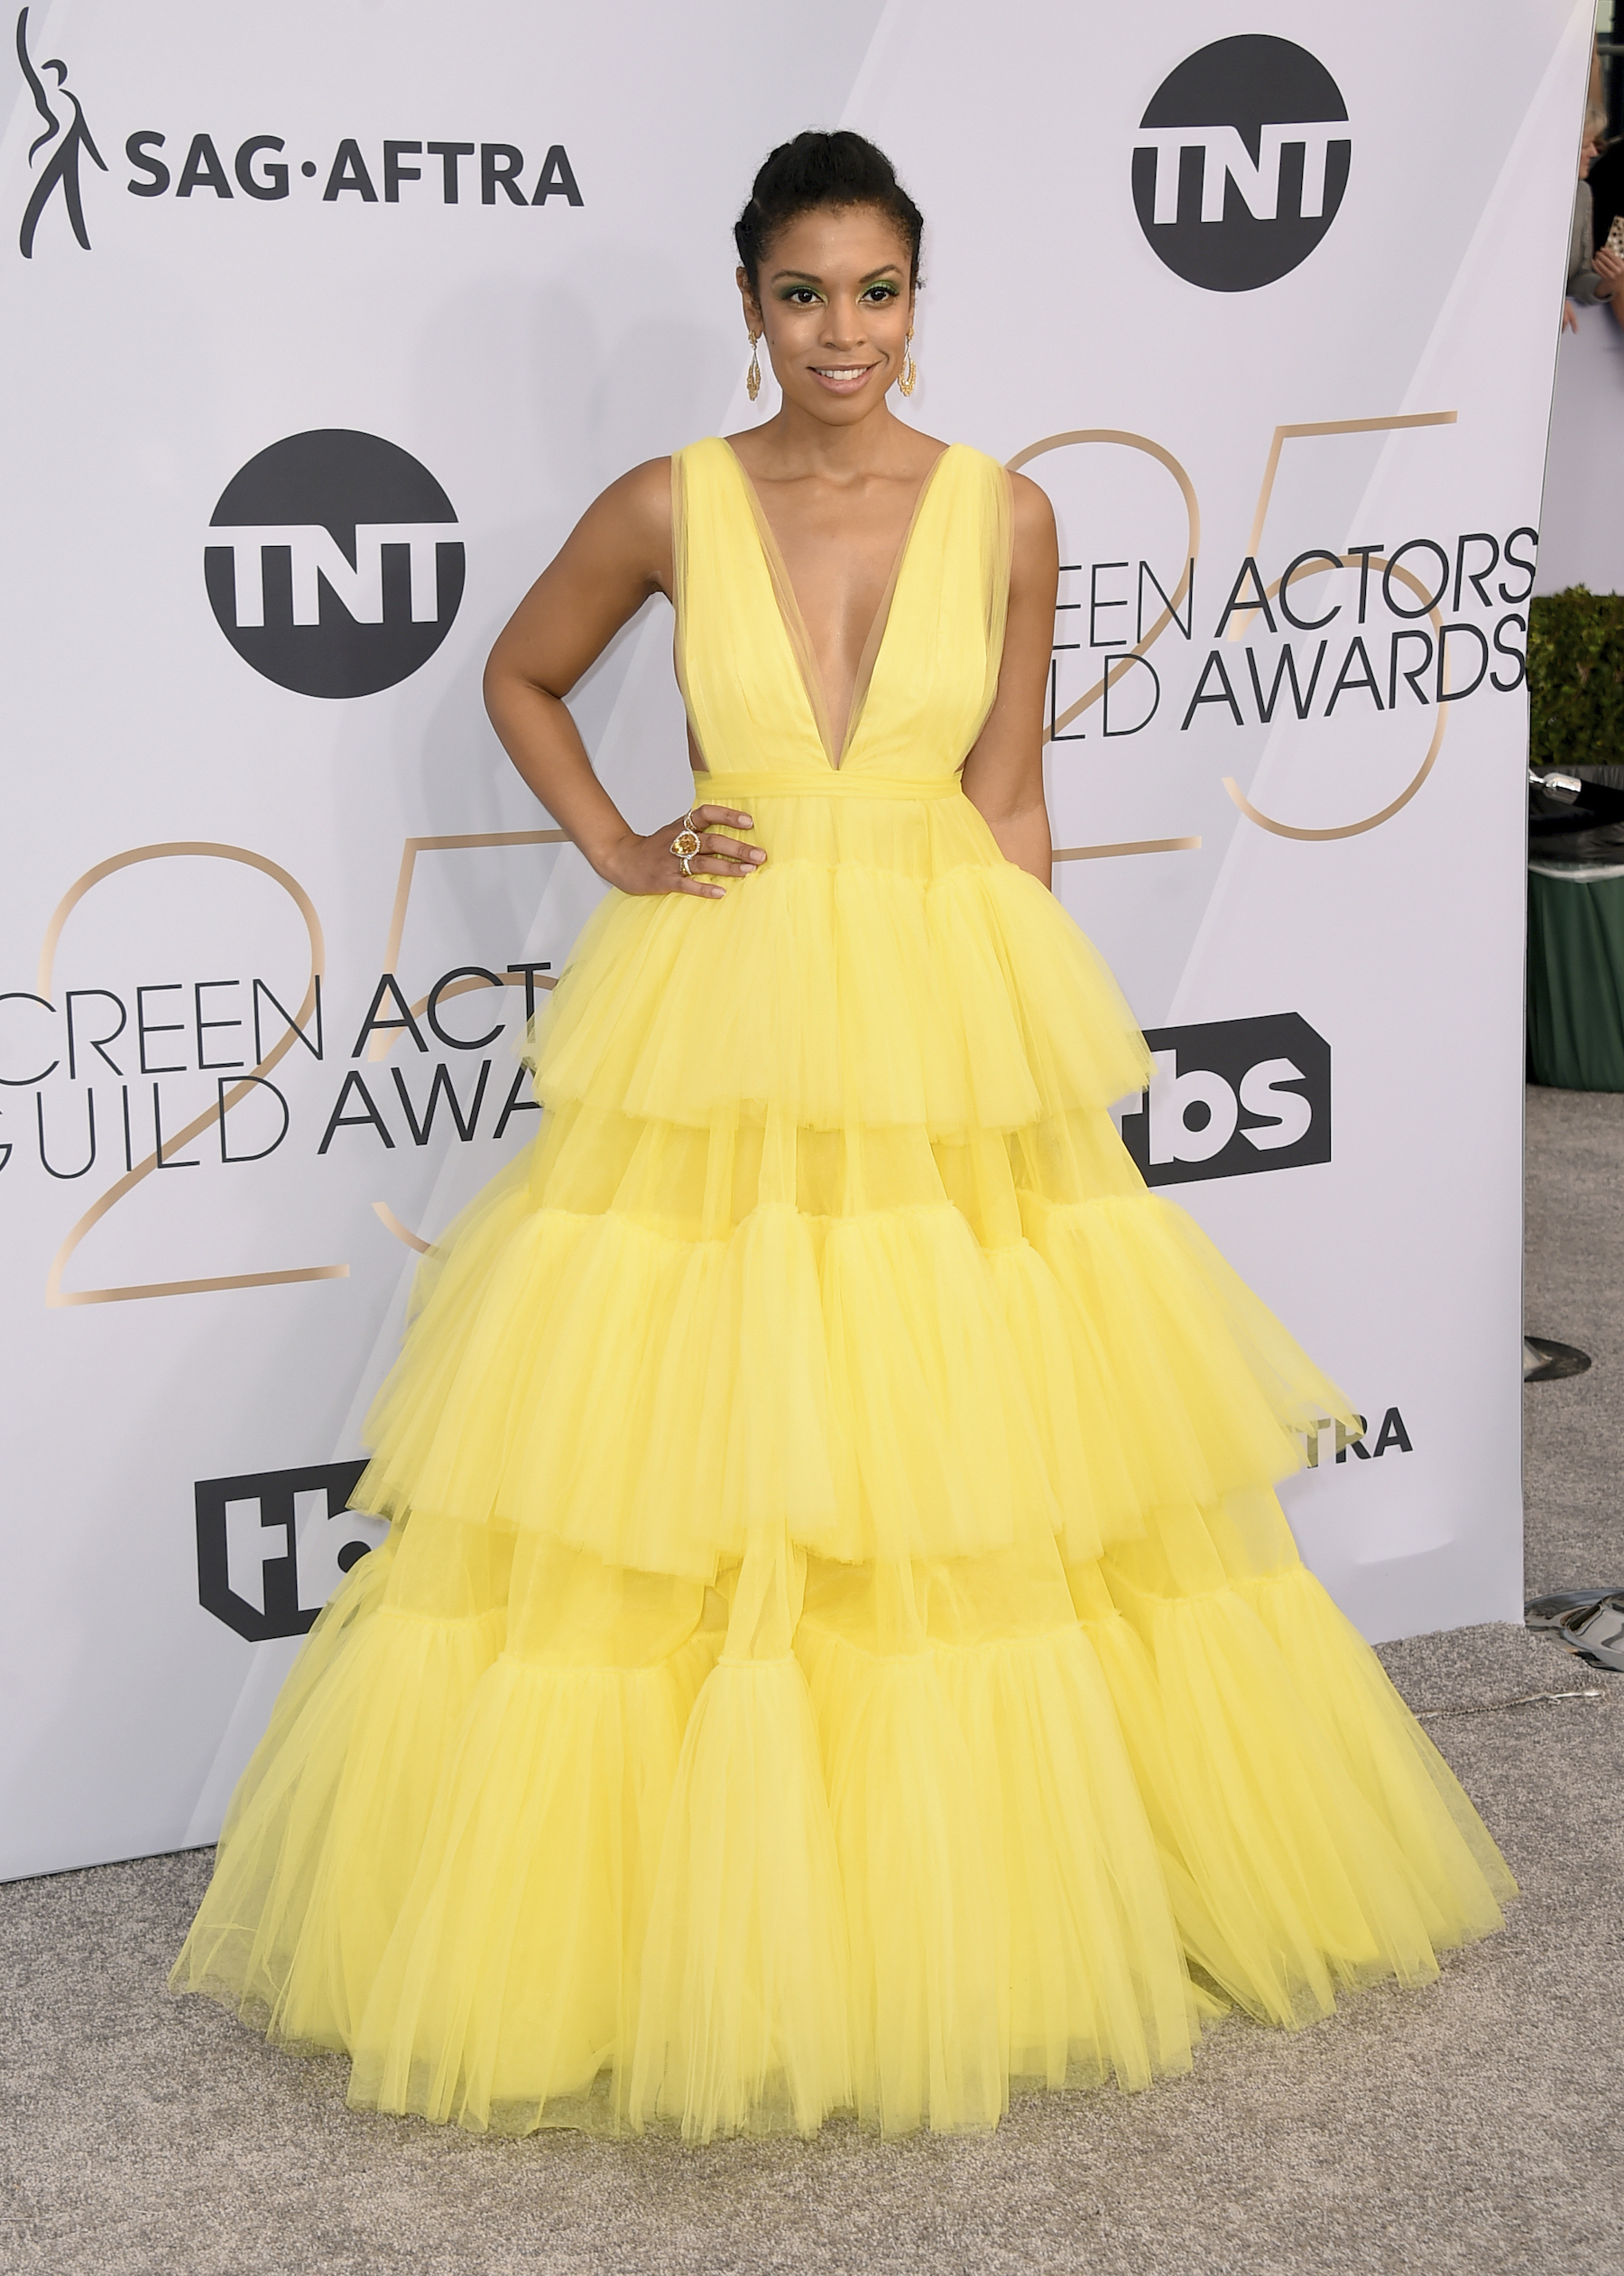 "<div class=""meta image-caption""><div class=""origin-logo origin-image ap""><span>AP</span></div><span class=""caption-text"">Susan Kelechi Watson arrives at the 25th annual Screen Actors Guild Awards at the Shrine Auditorium & Expo Hall on Sunday, Jan. 27, 2019, in Los Angeles. (Jordan Strauss/Invision/AP)</span></div>"